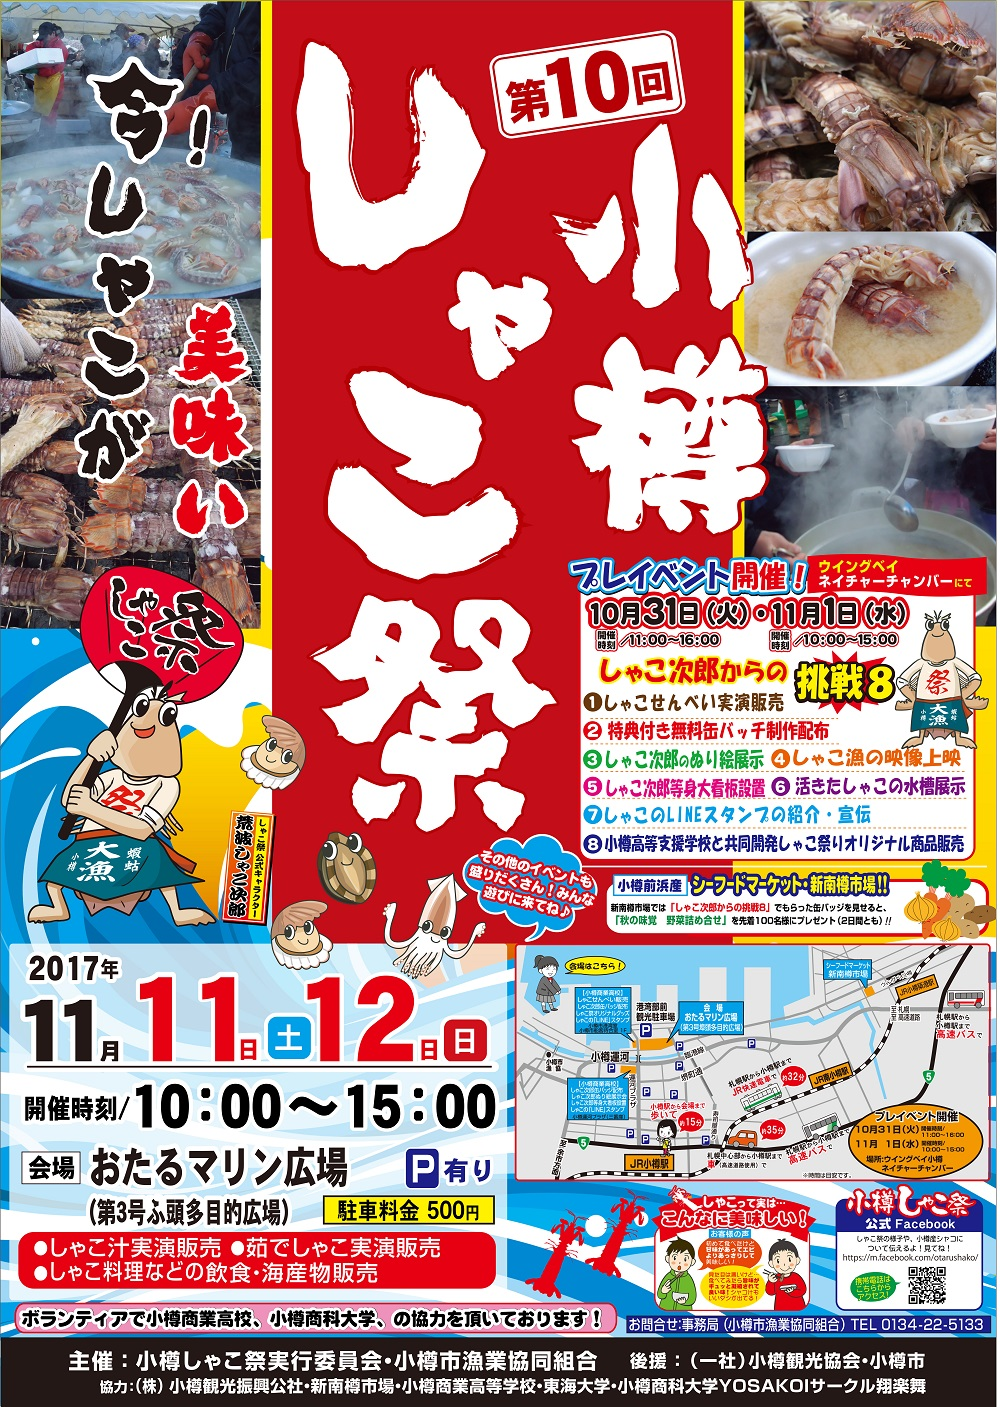 out第10回しゃこ祭り決定